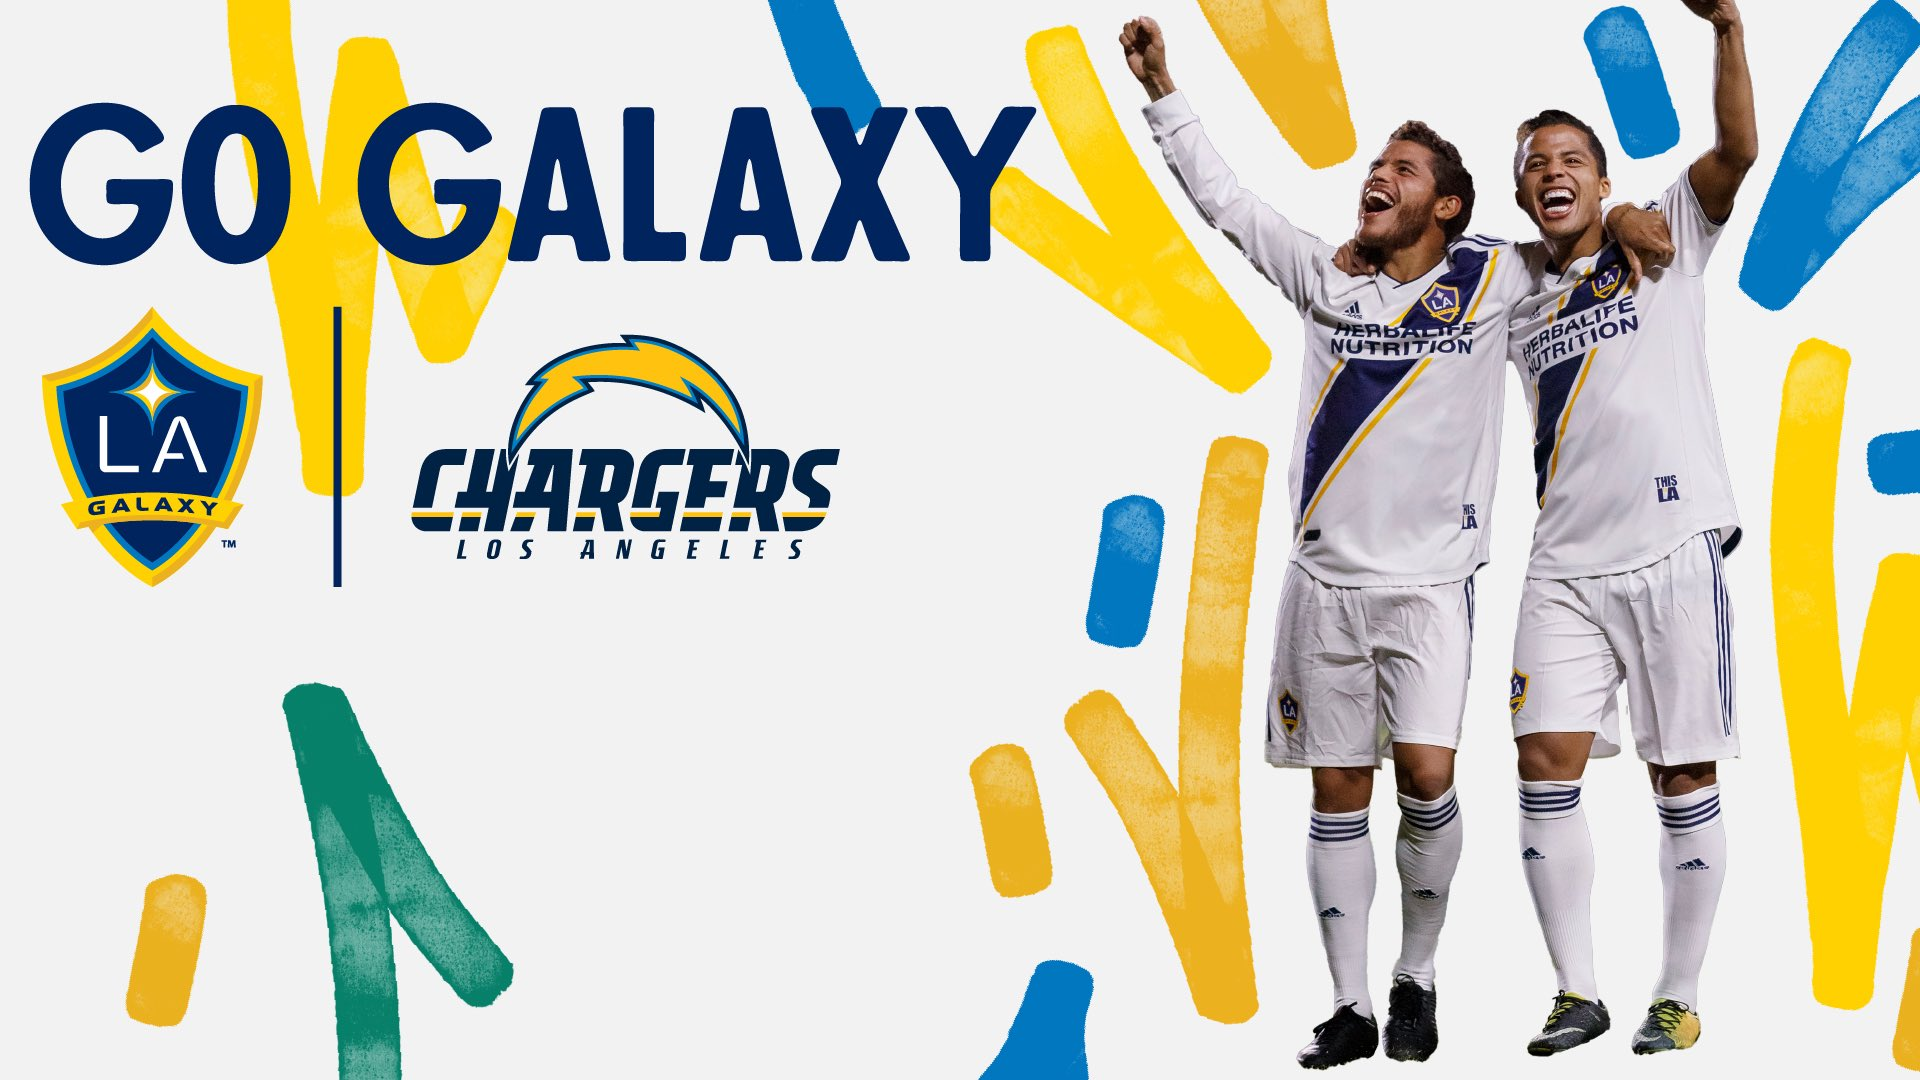 Stoked for @LAGalaxy's home opener tonight! Best of luck �� #MLSisBack #LAvPOR https://t.co/kB0uh0huz3